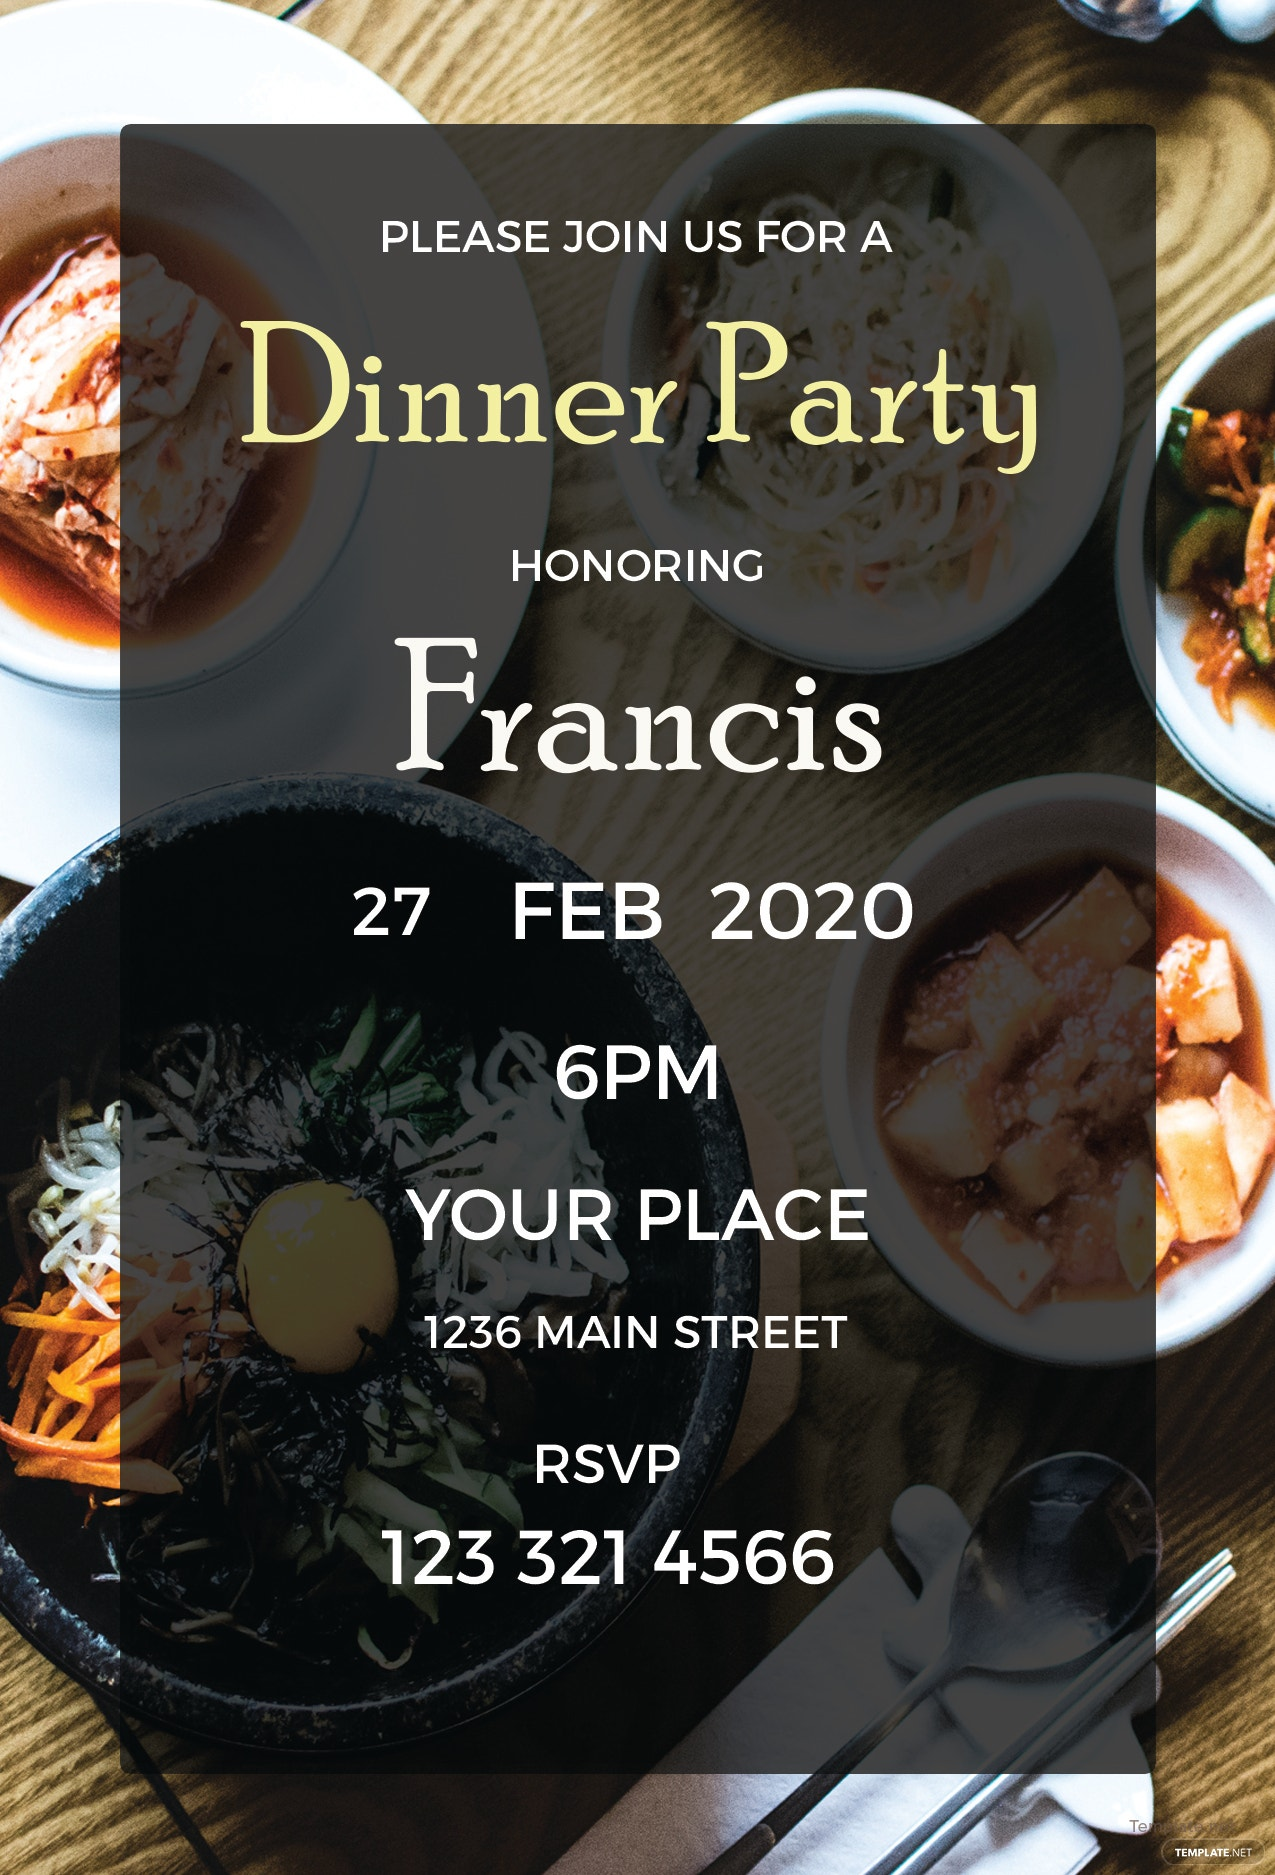 Free Dinner Party Invitation Template in Adobe Photoshop ...